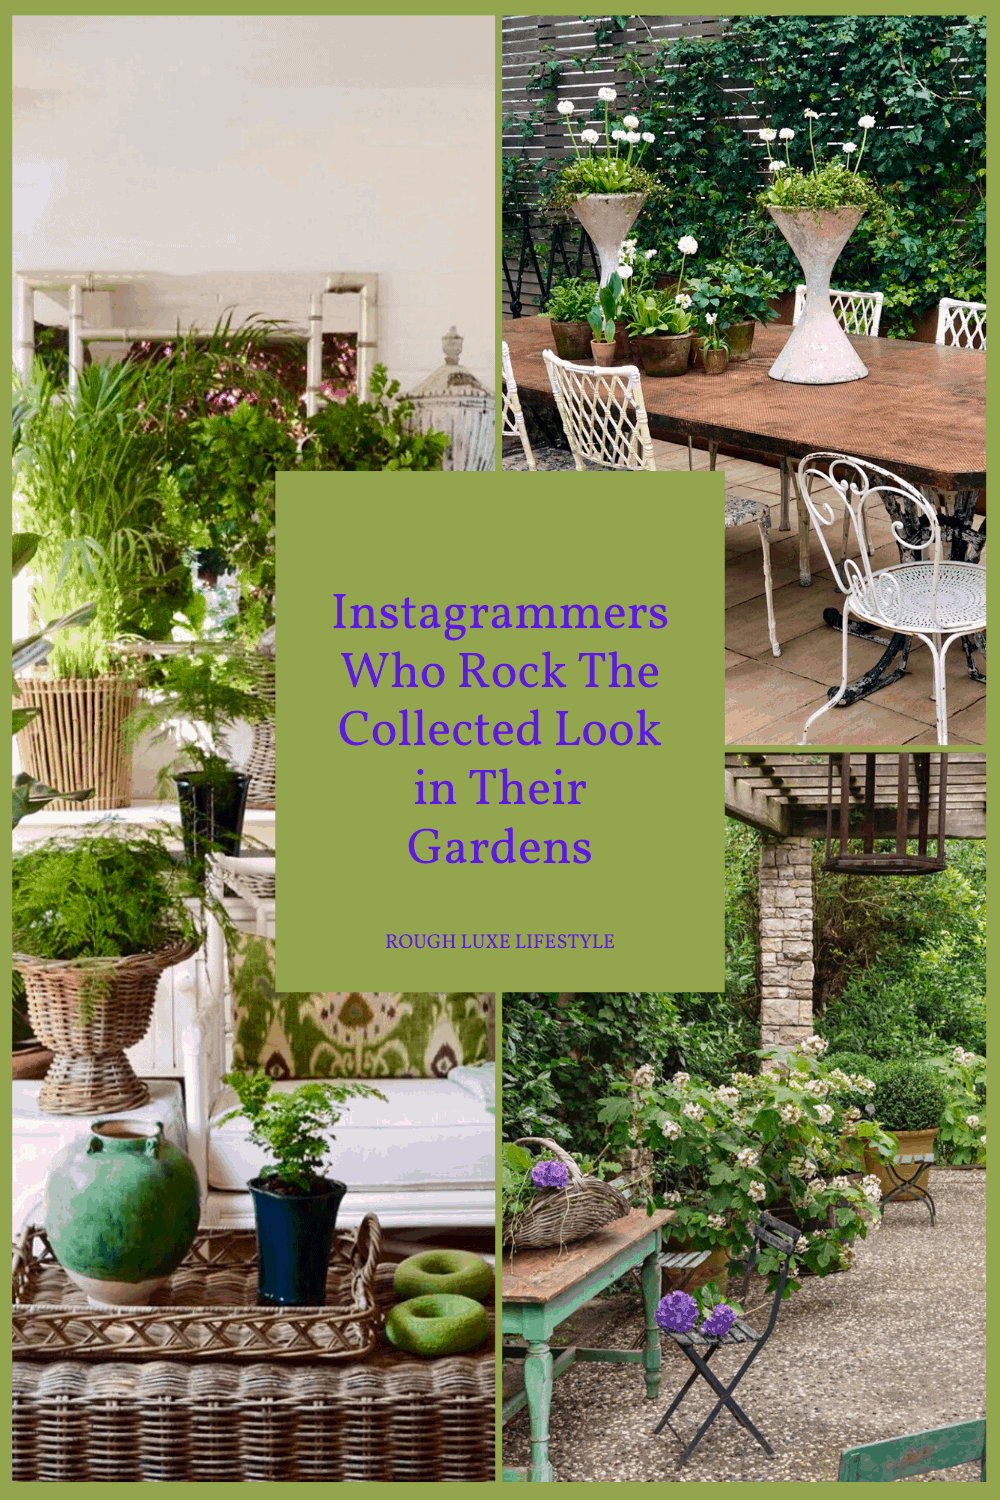 Instagrammers who rock the collected look in their gardens